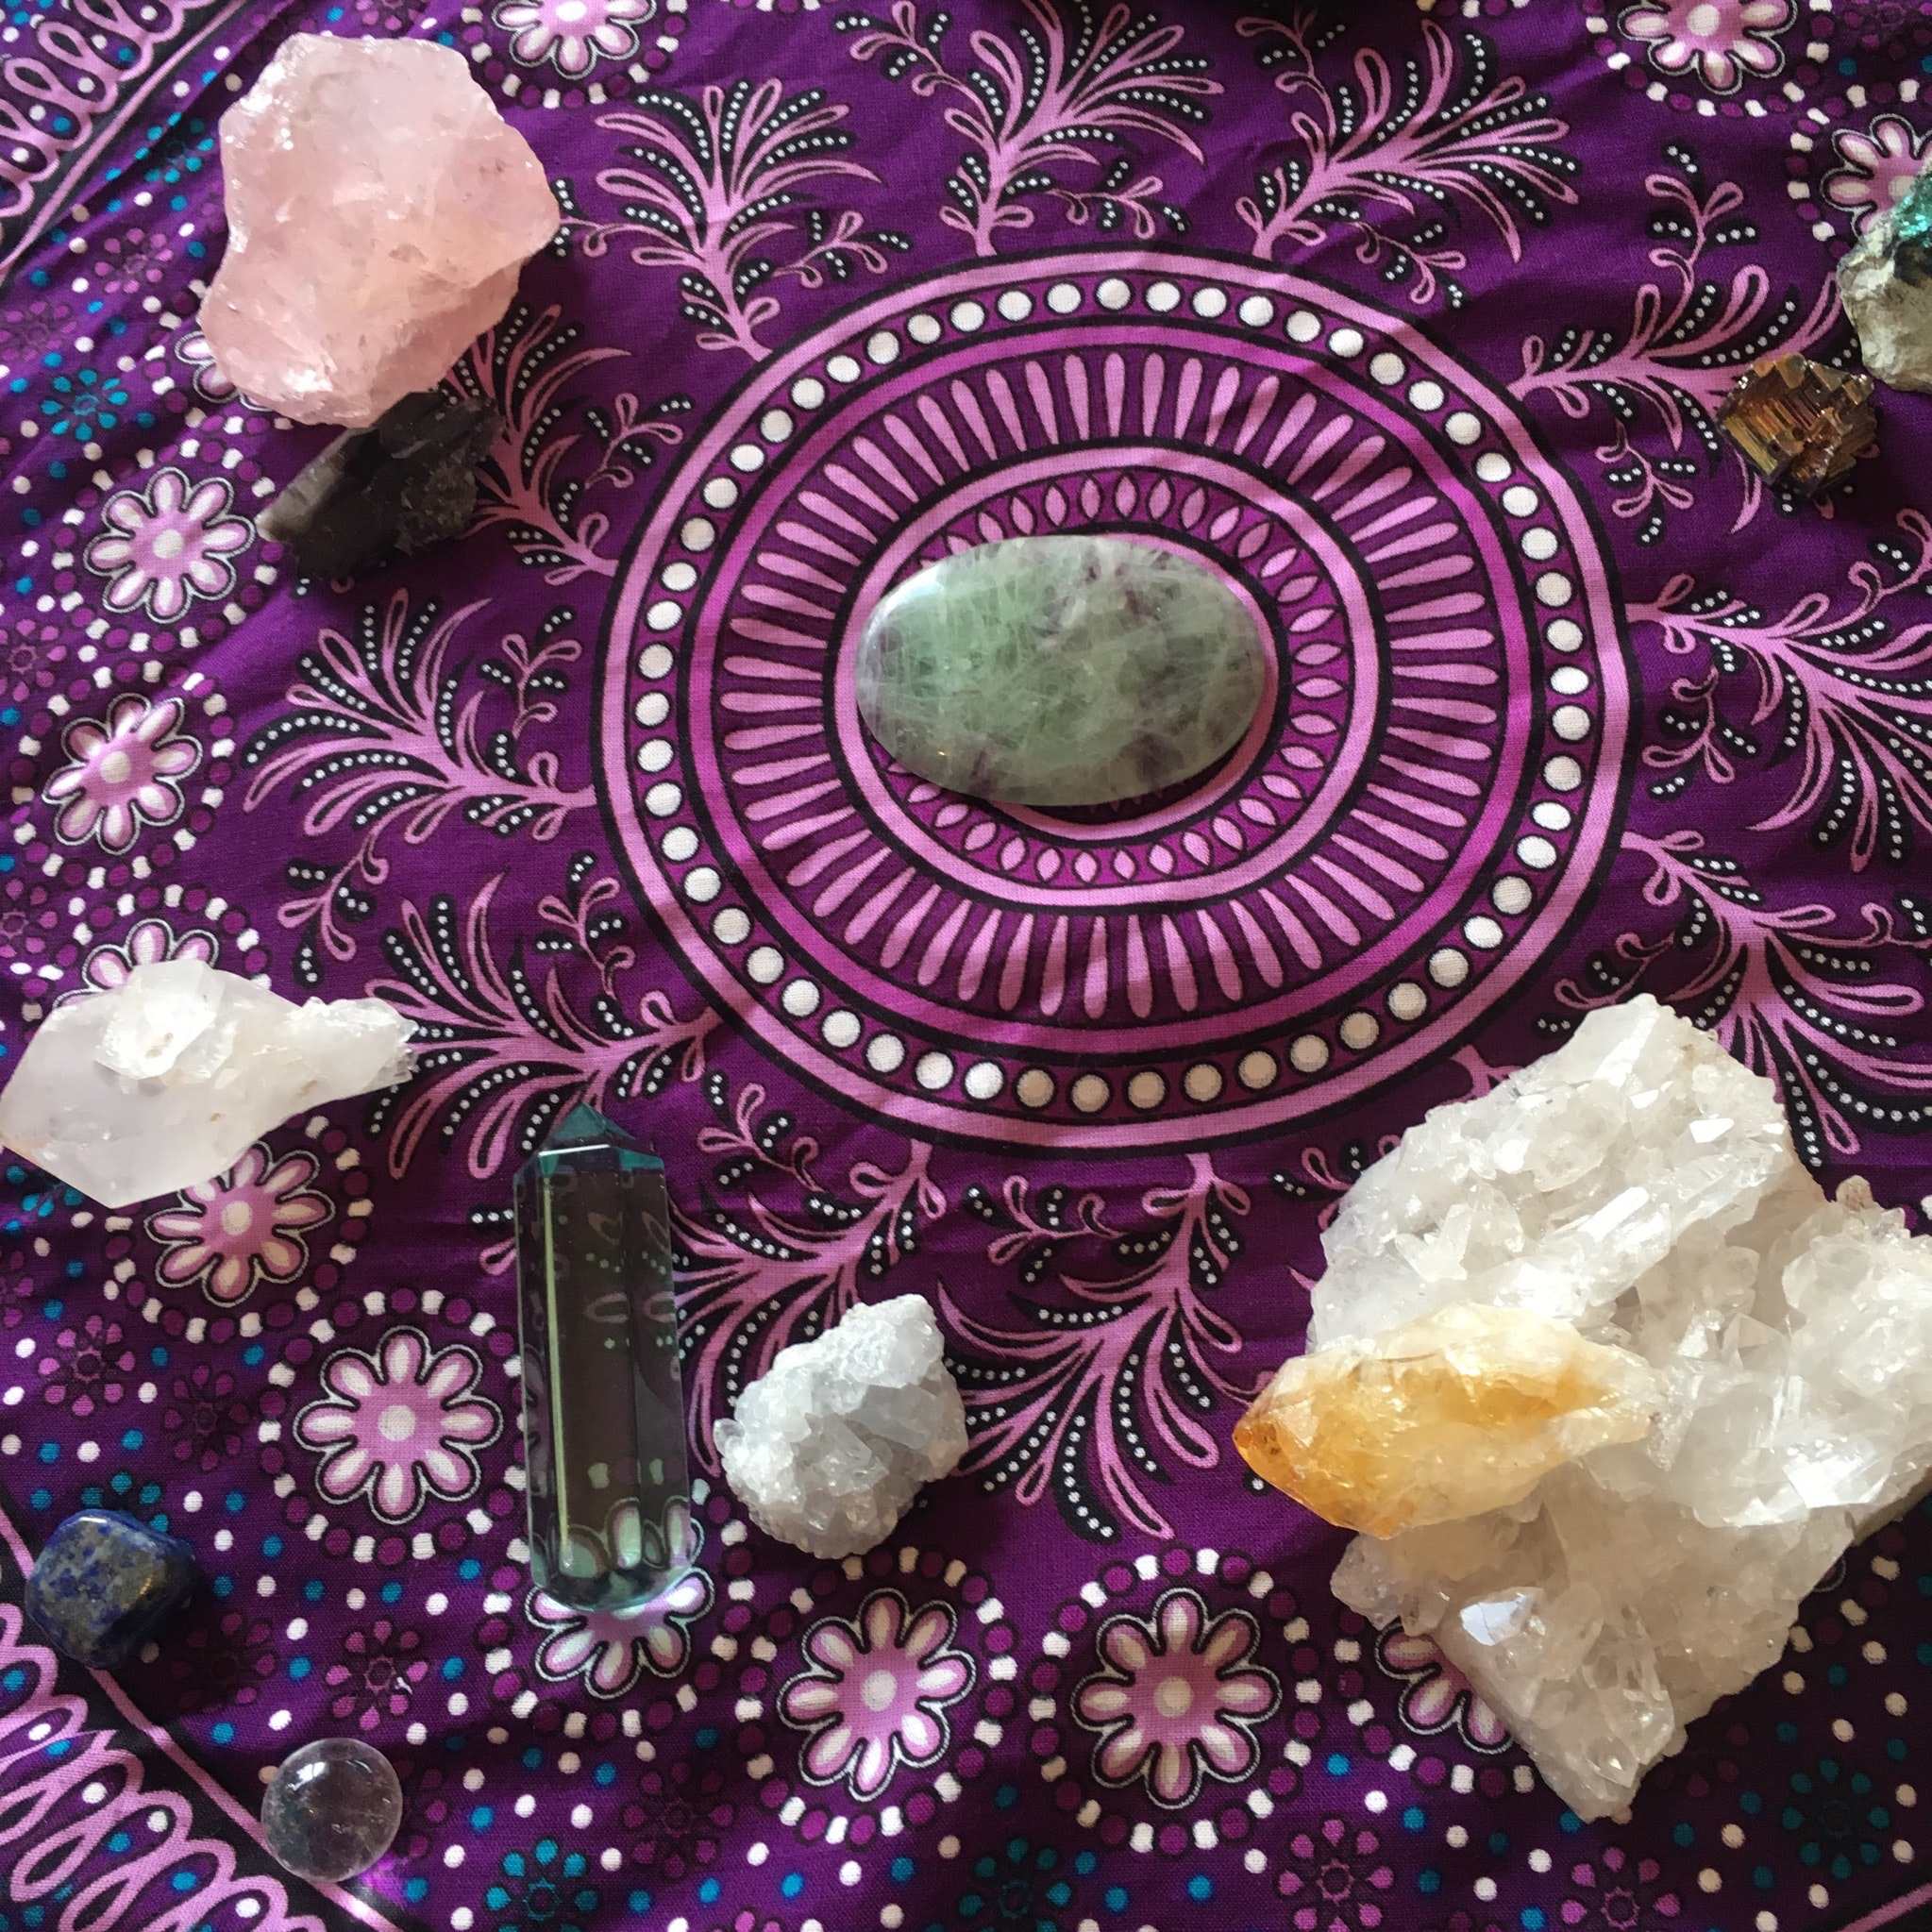 PROGRAMMING & BLESSING YOUR CRYSTALS